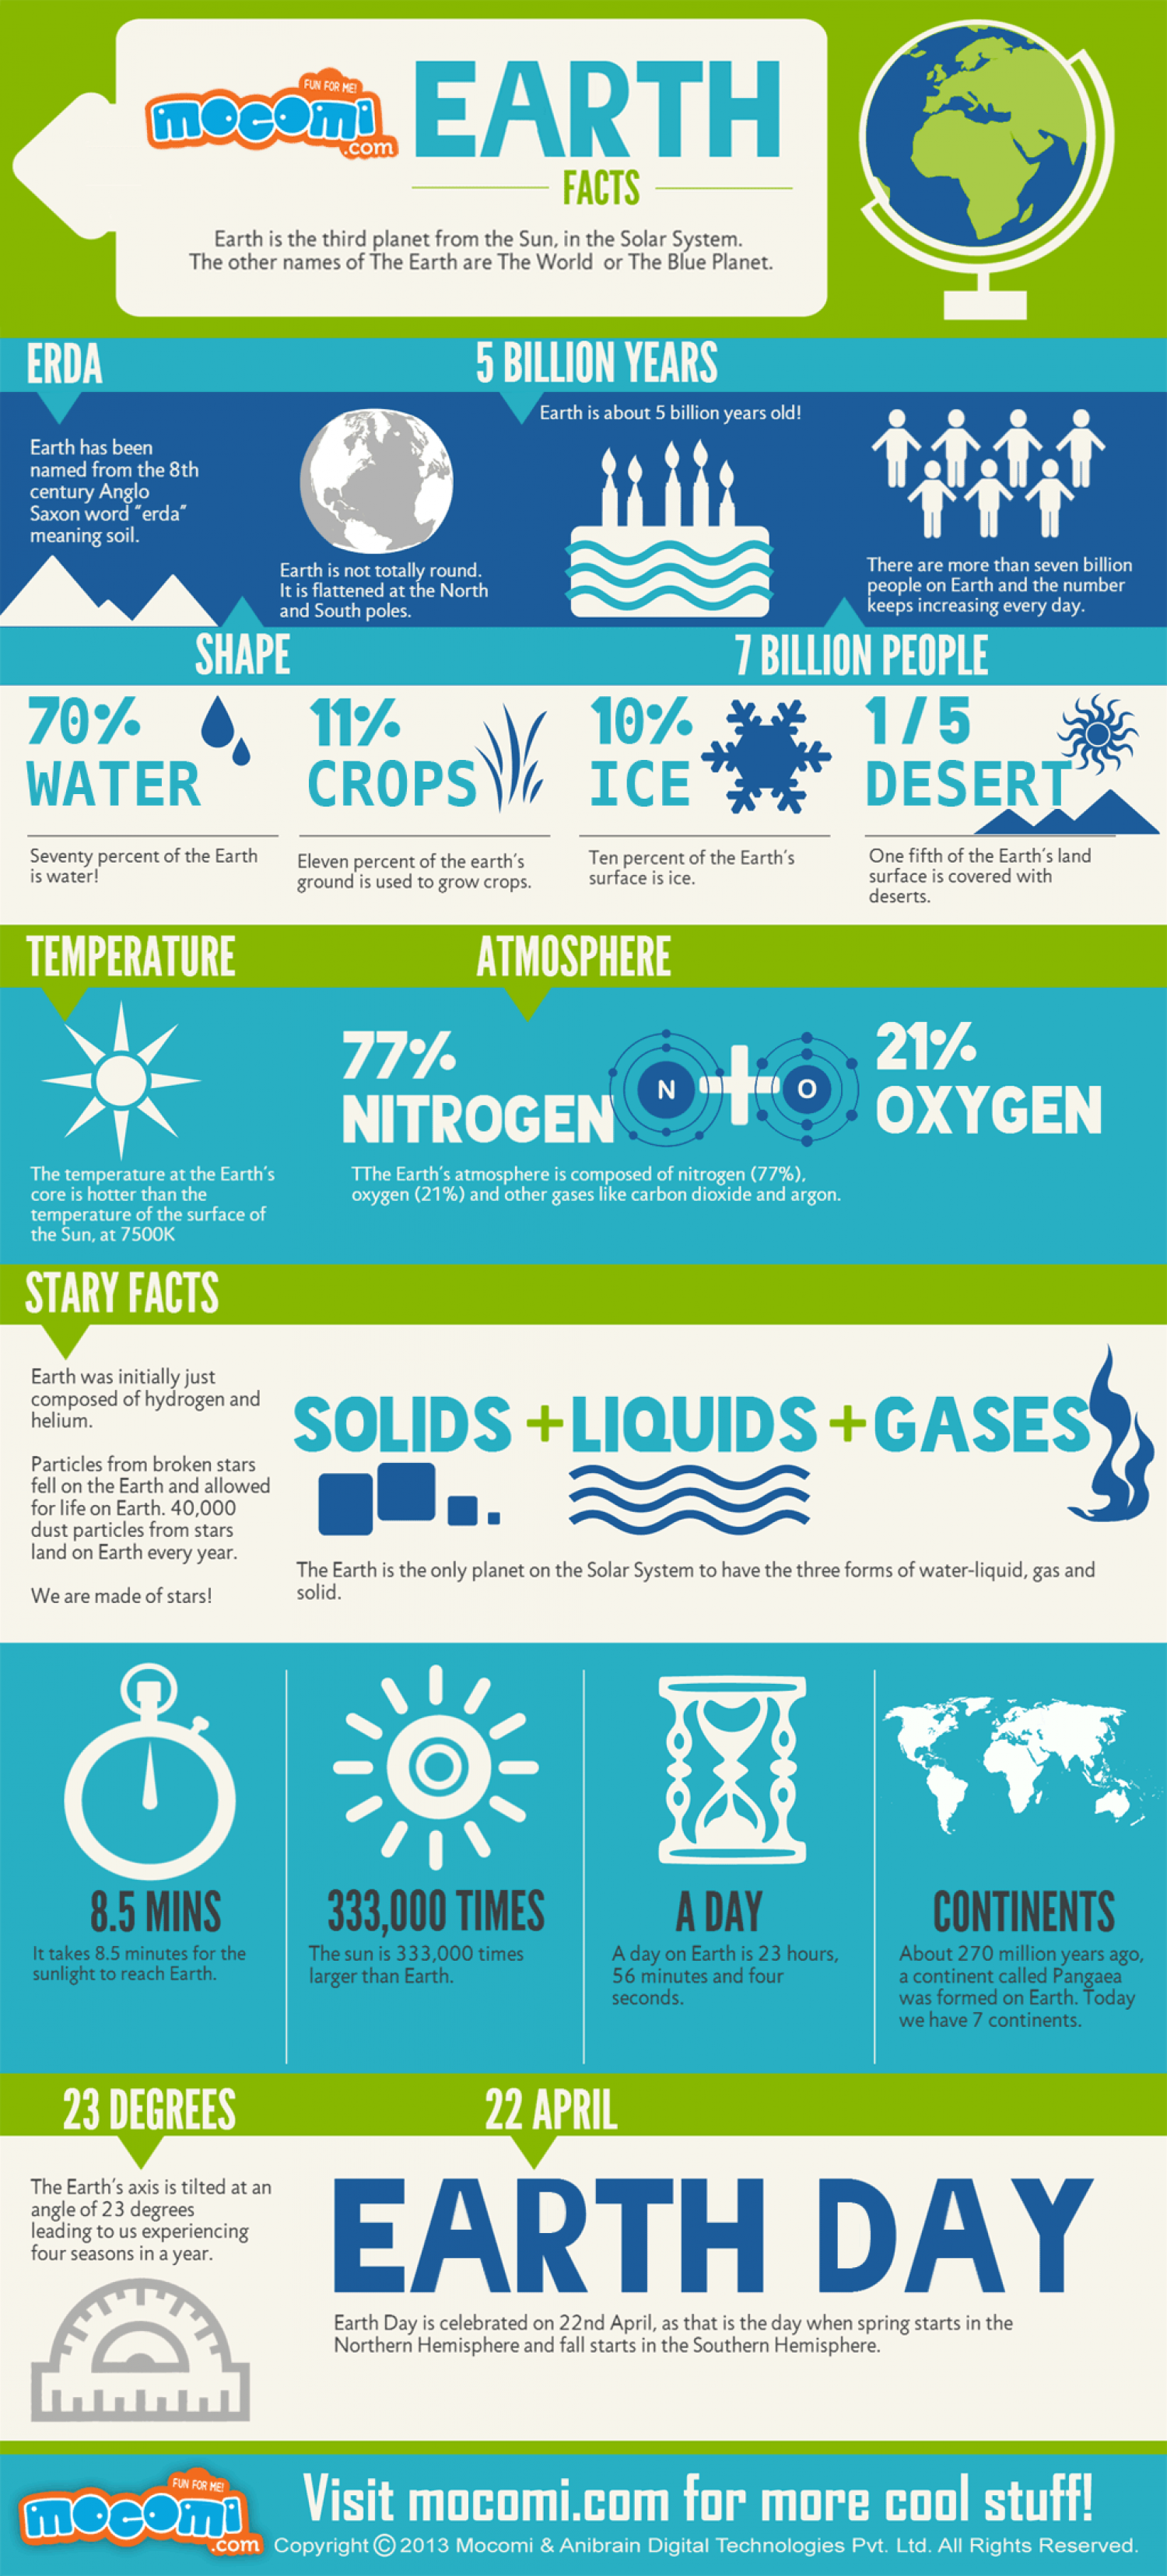 Earth Facts By Mocomi.com Infographic